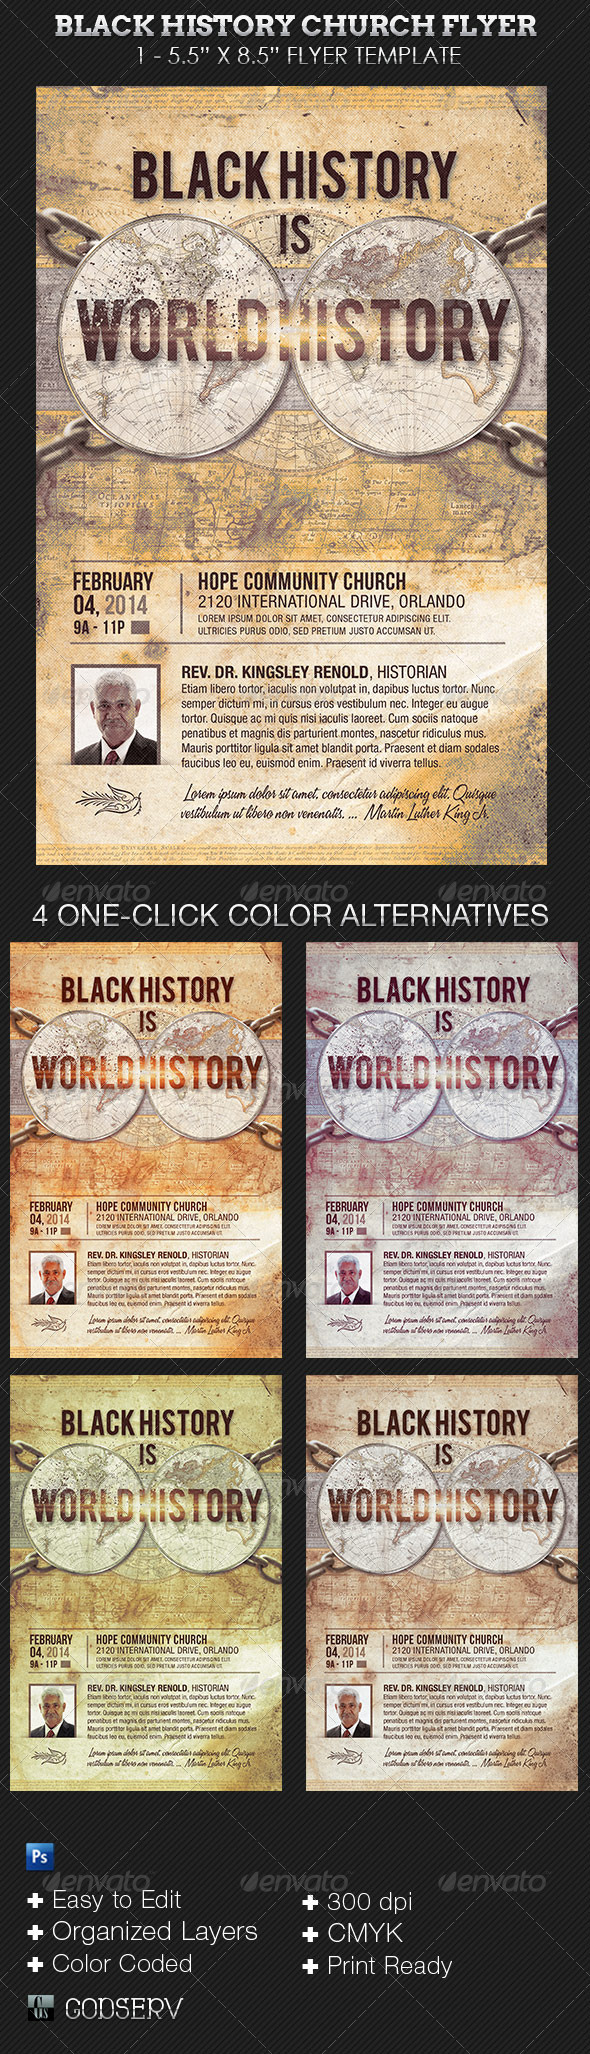 Black History Church Flyer Template - Church Flyers